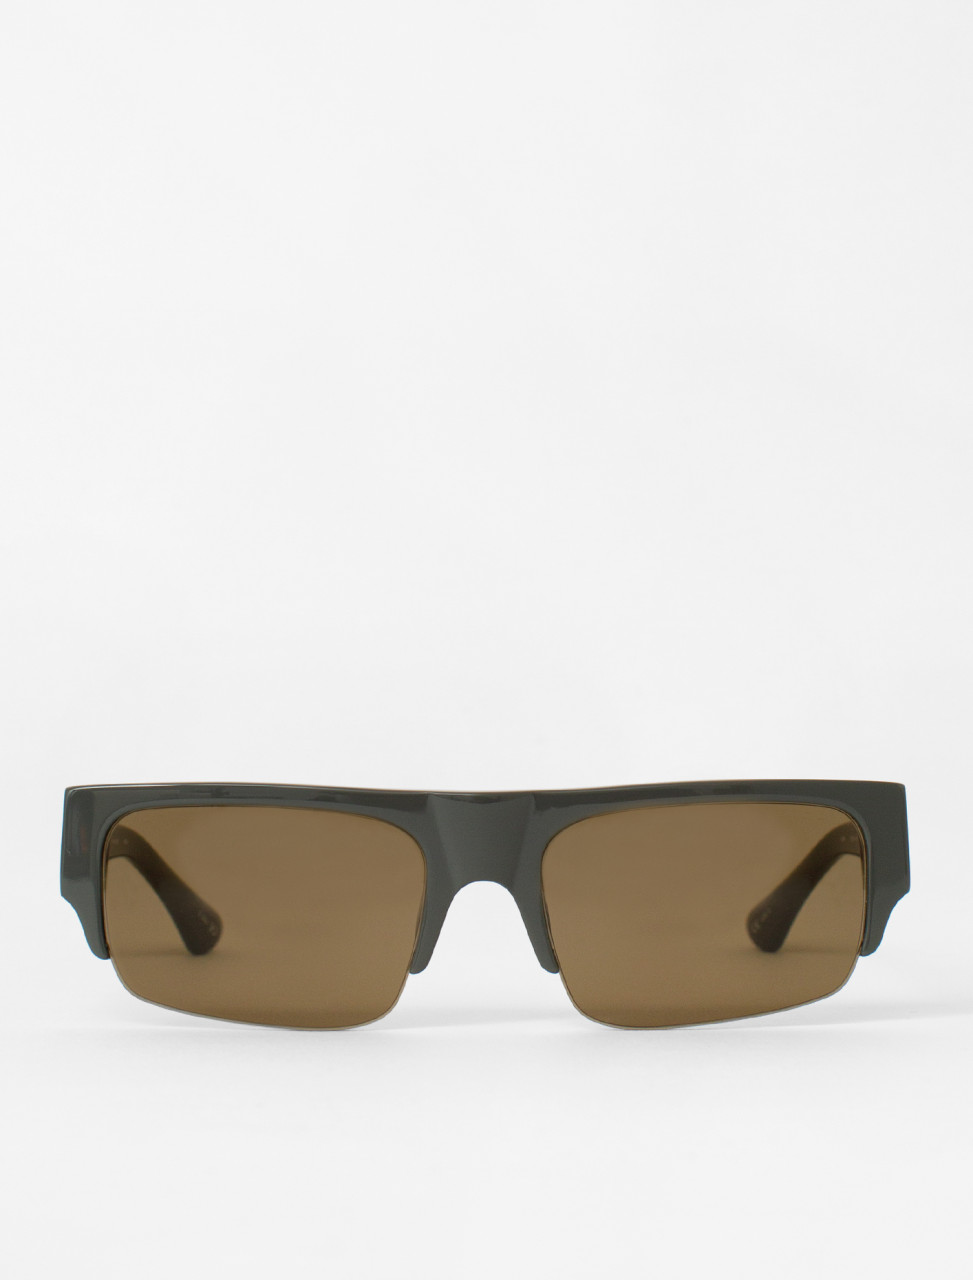 Dries van Noten Rectangular Sunglasses